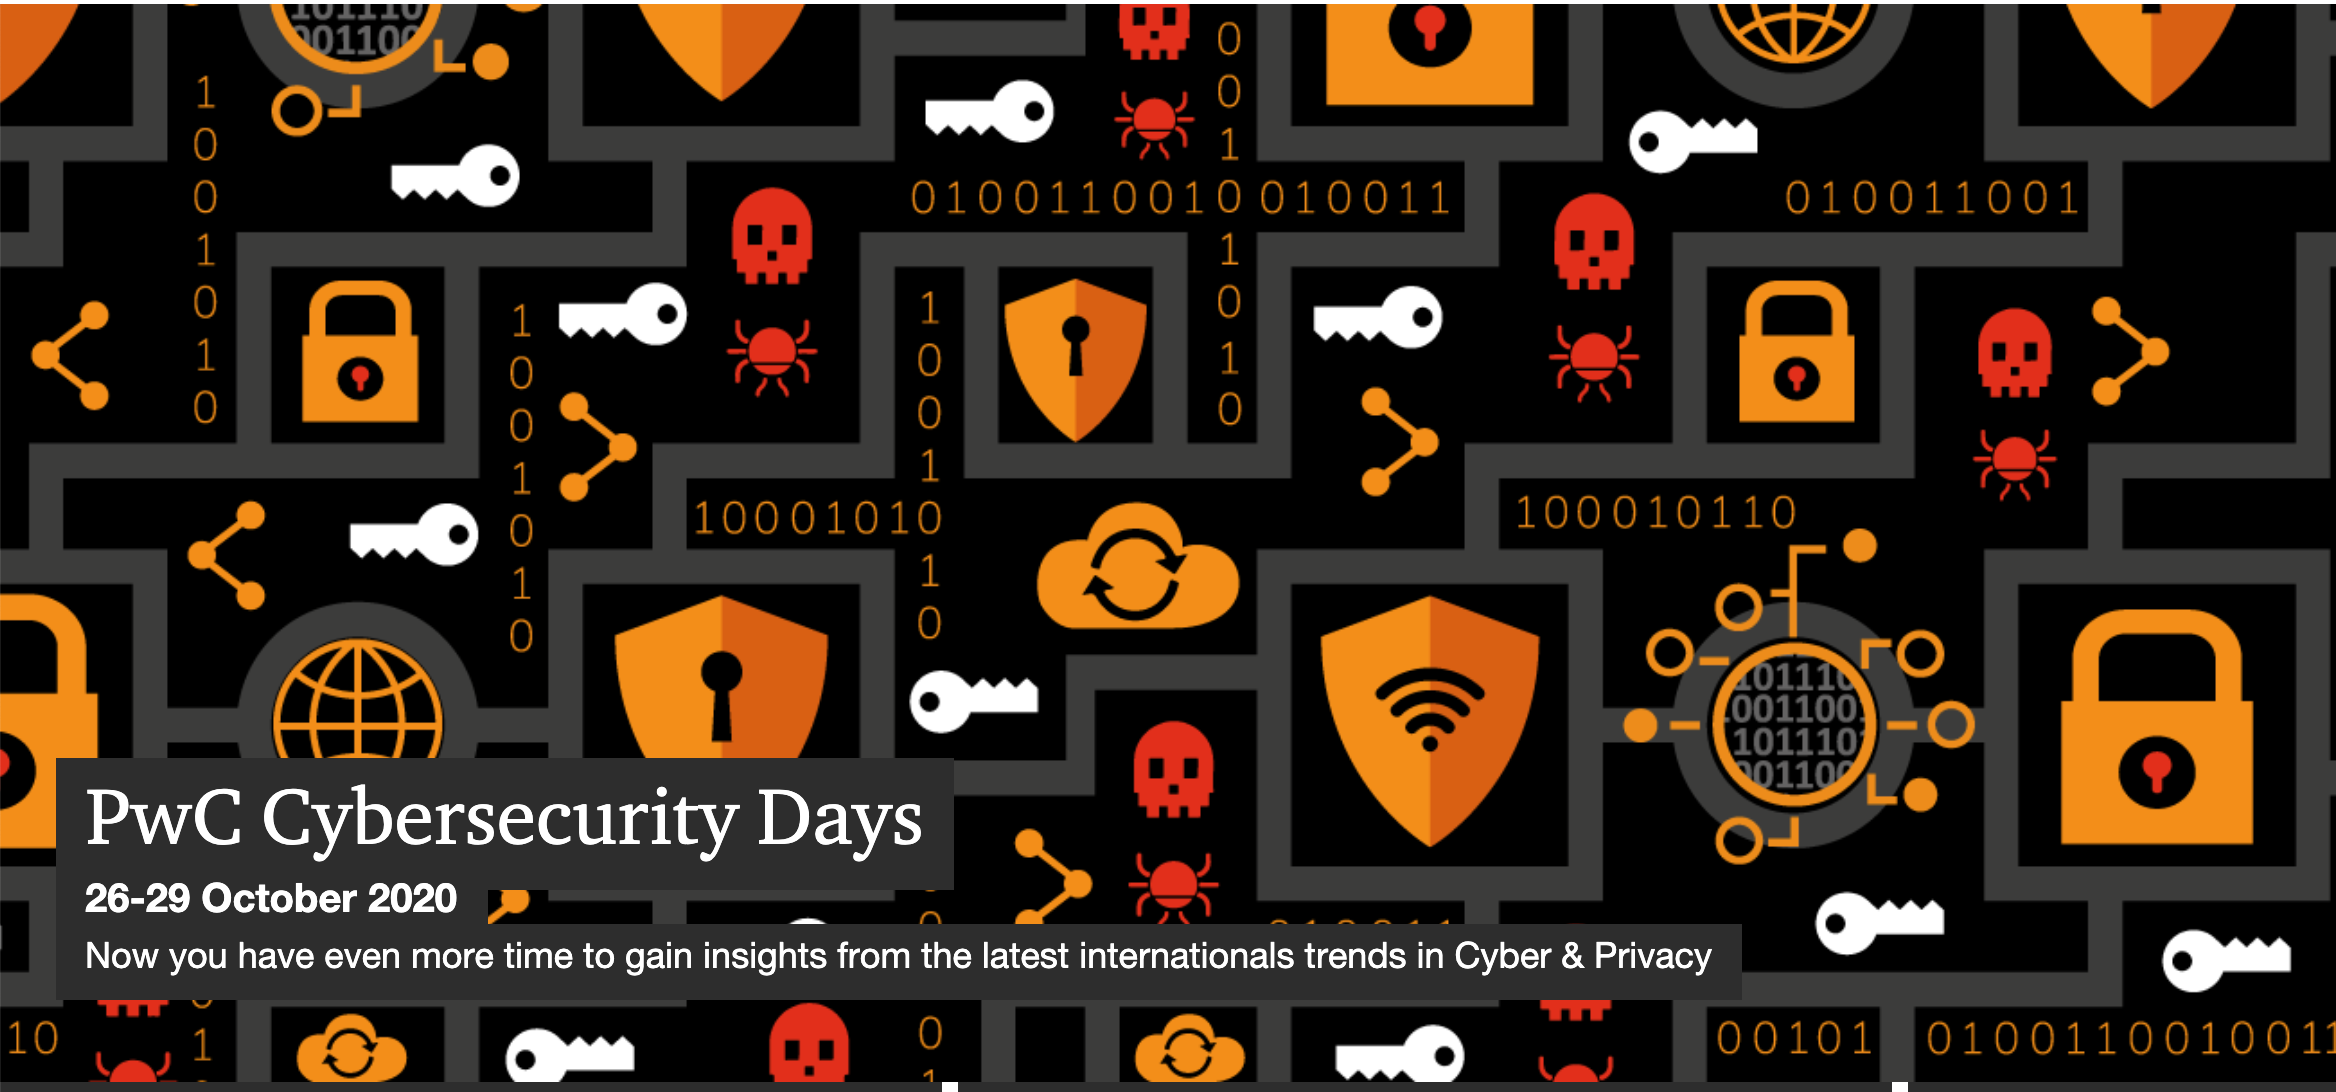 PwC Cybersecurity Days